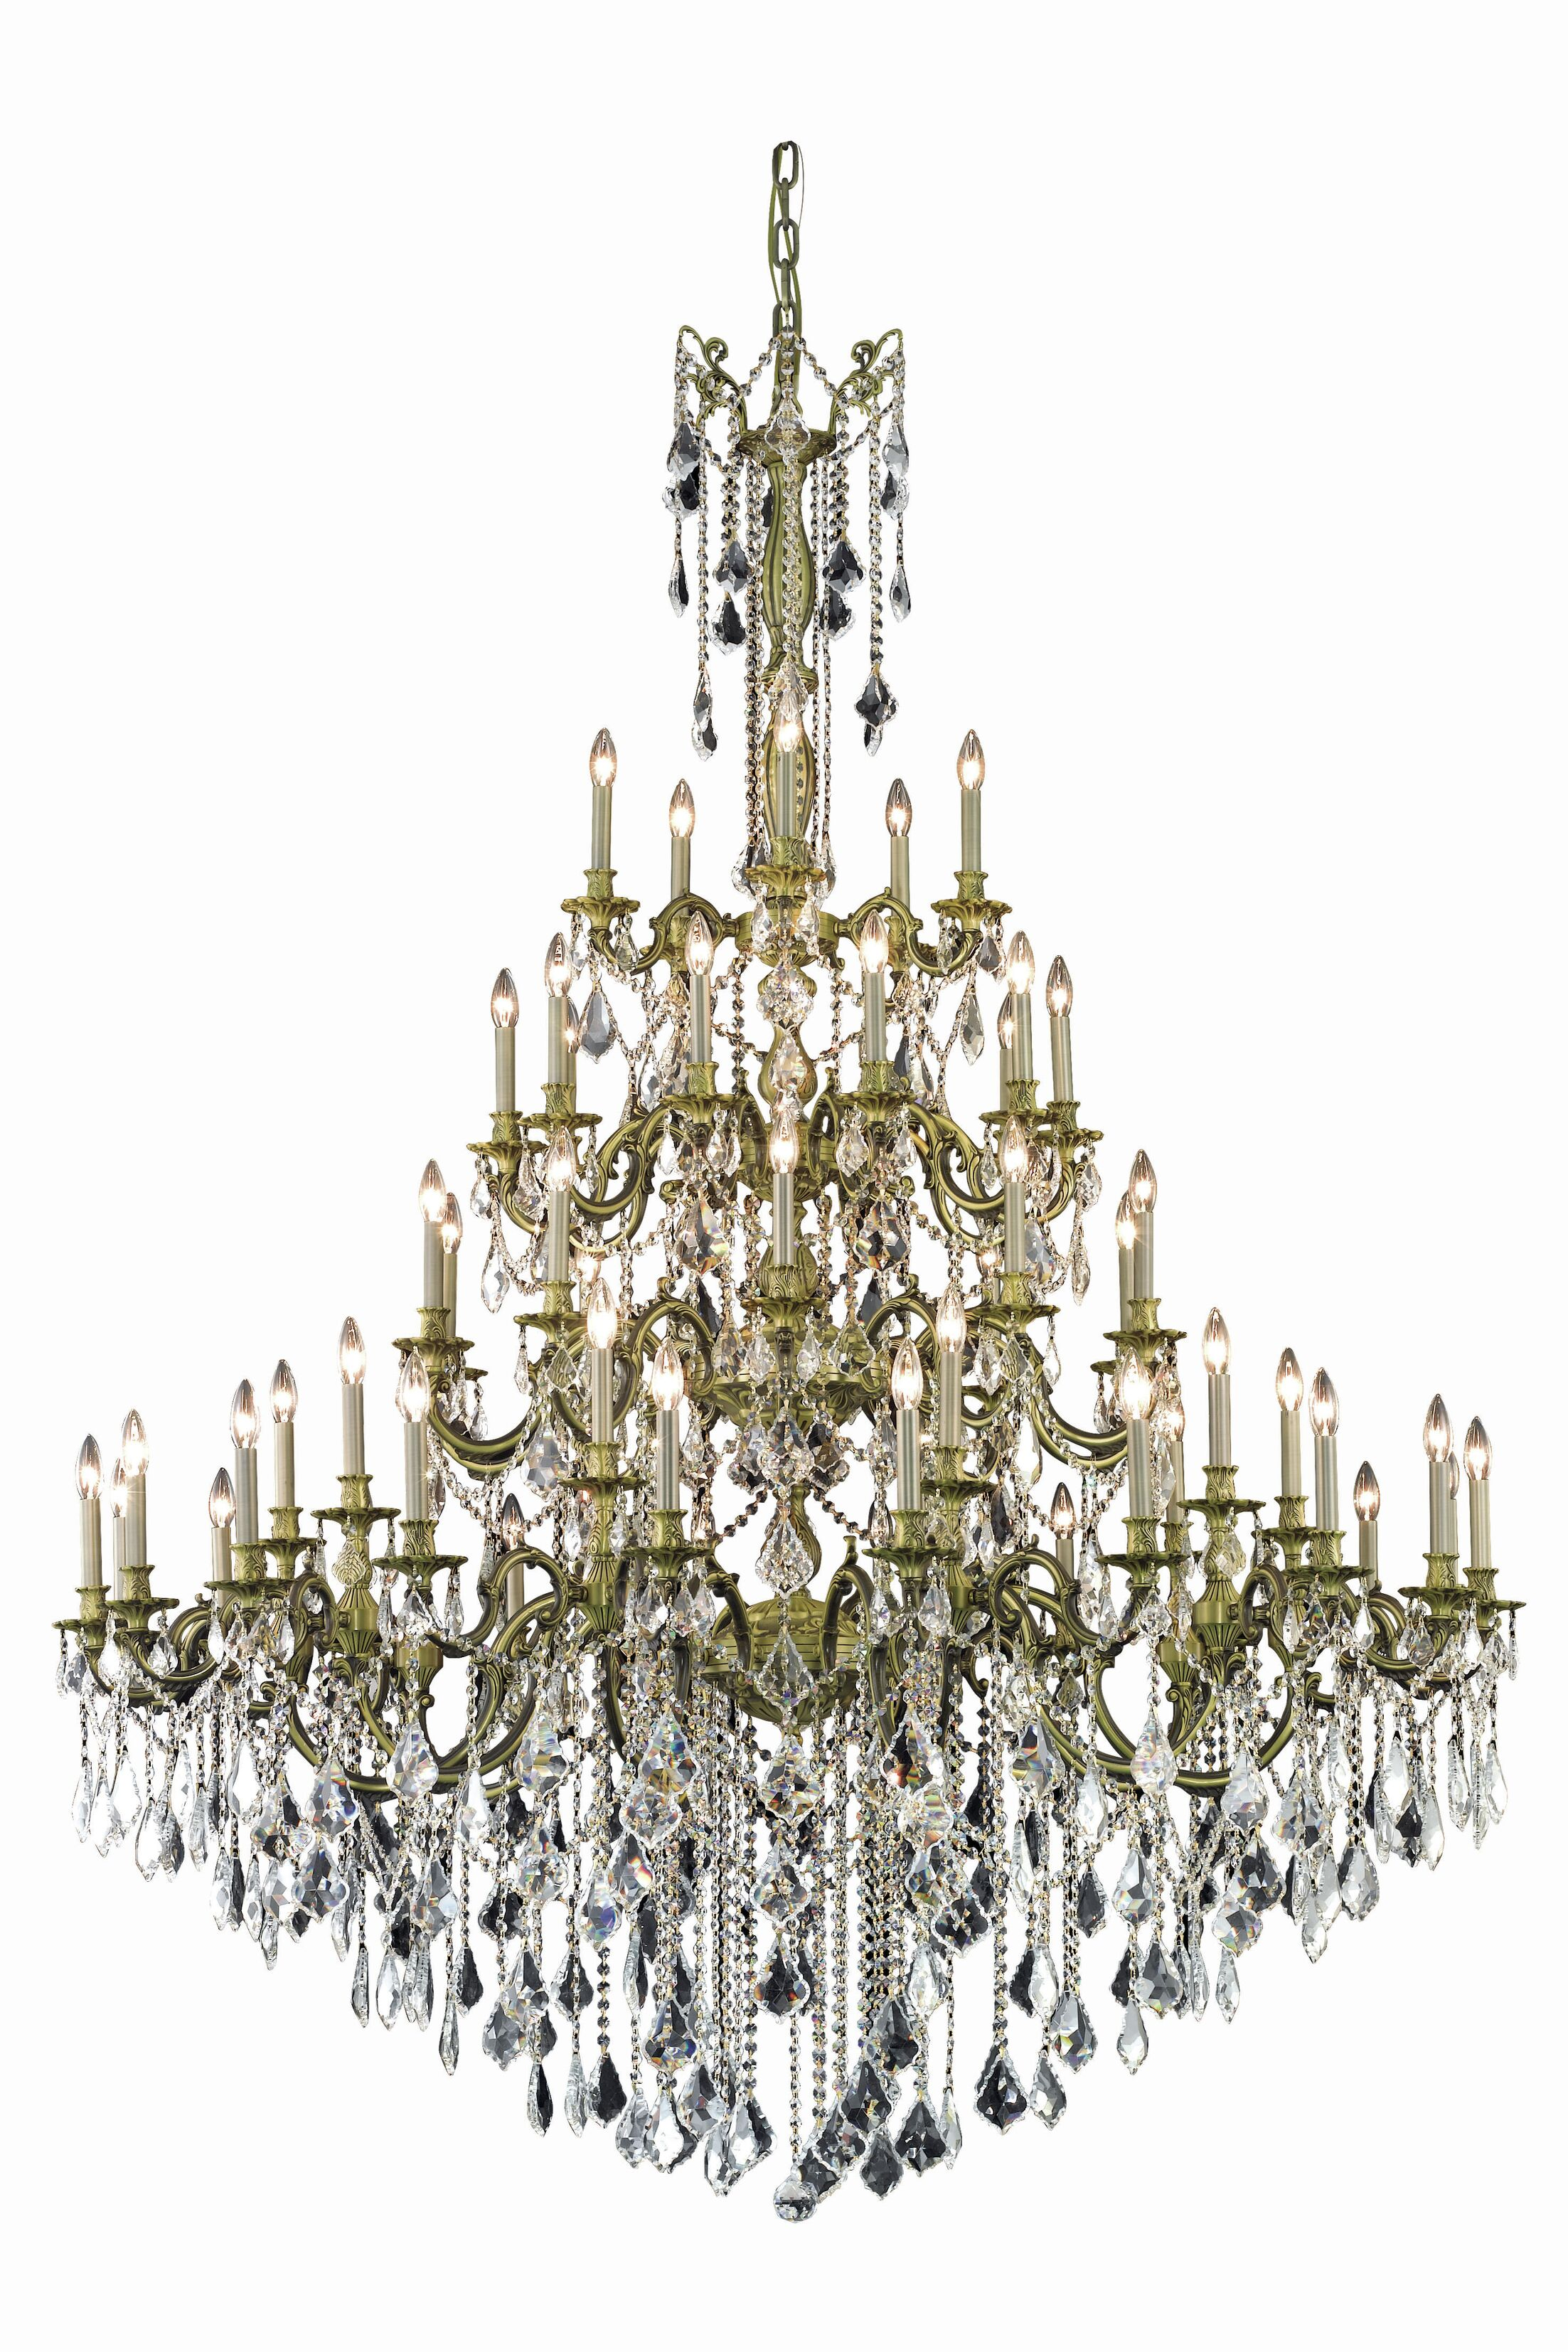 Utica 55-Light Candle Style Chandelier Color: French Gold, Crystal Grade: Elegant Cut